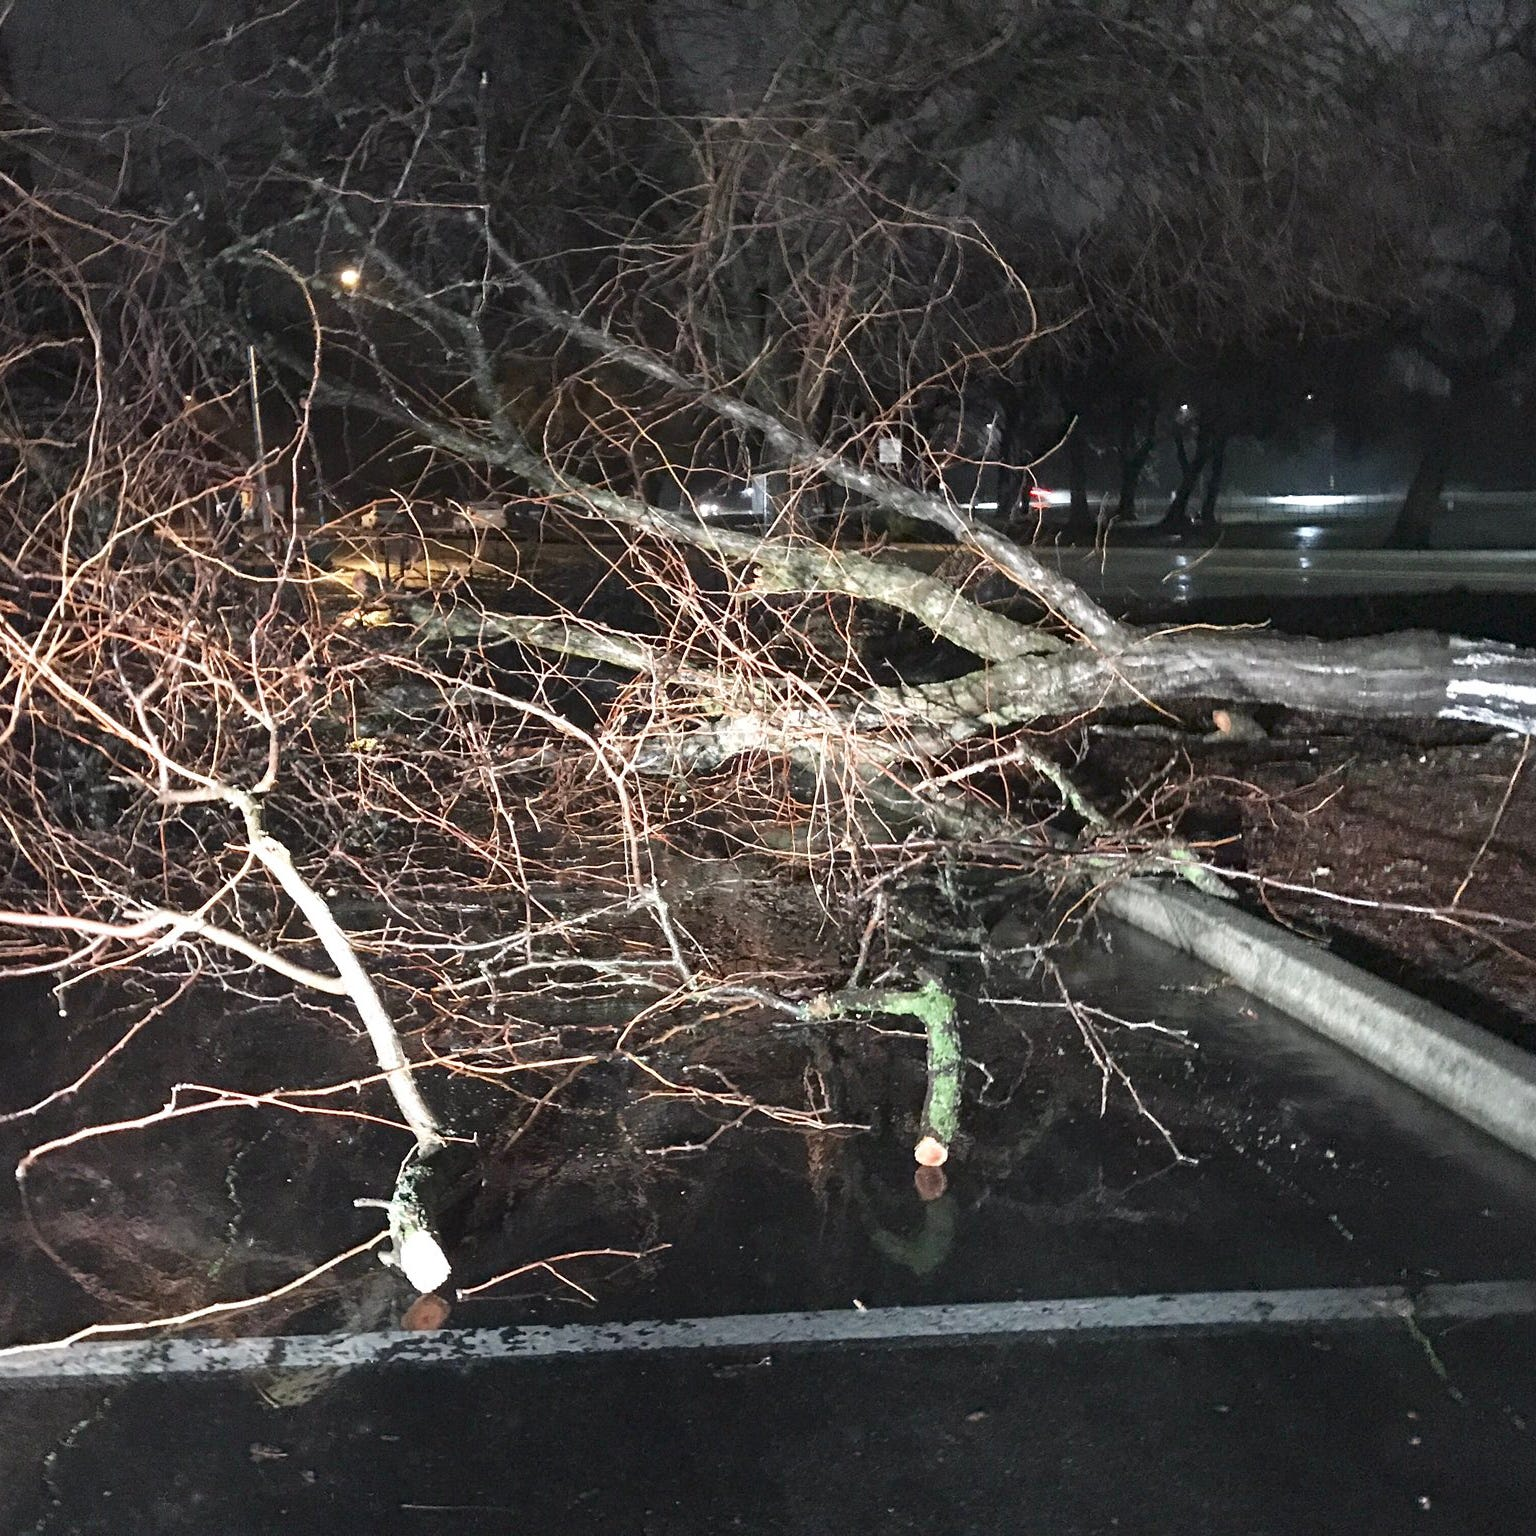 Heavy rain causing power outages, flooding and downed trees